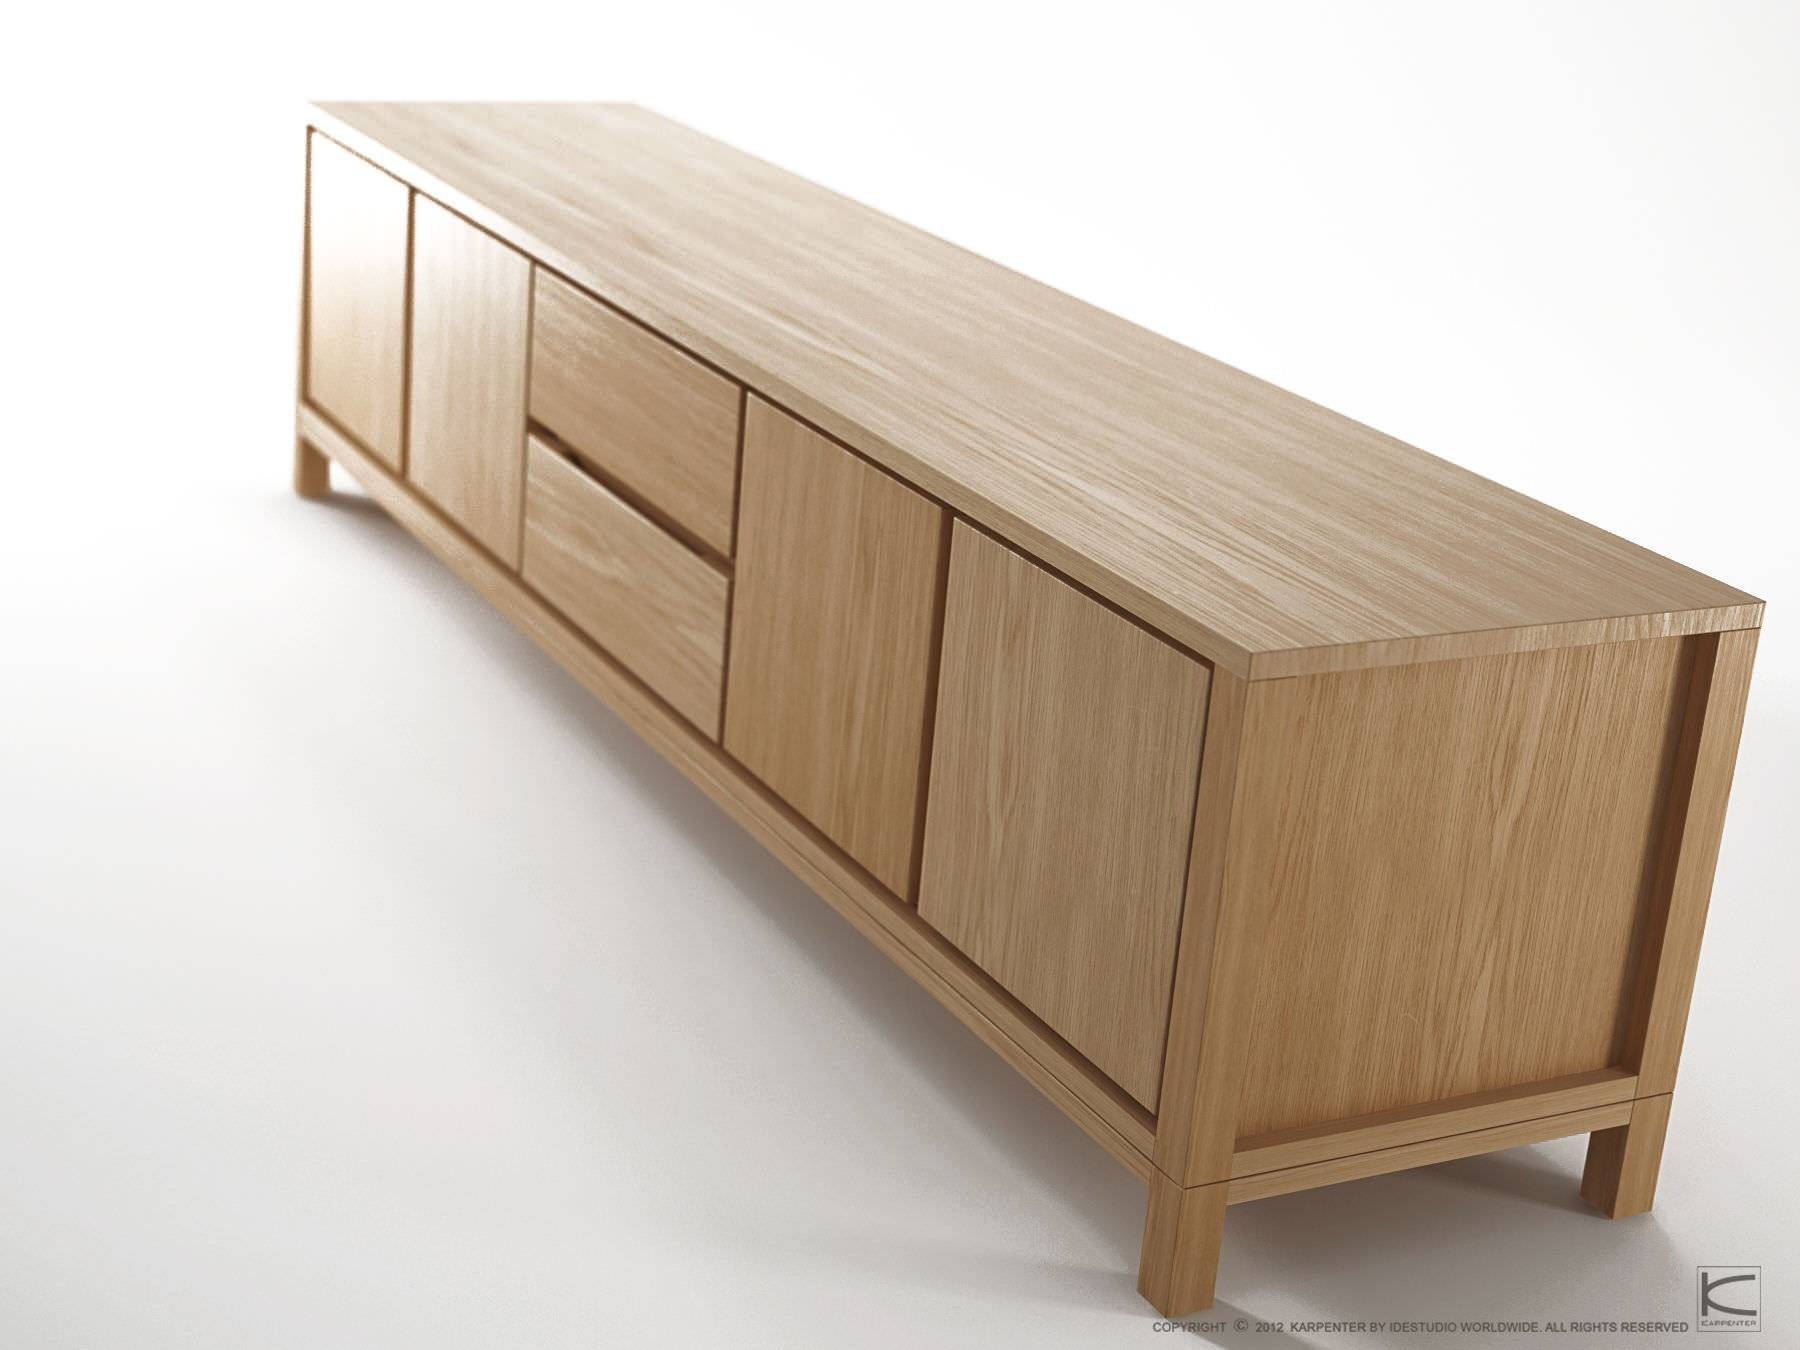 Contemporary Sideboard / Oak / Walnut / Solid Wood - Solid - Karpenter pertaining to Contemporary Wood Sideboards (Image 7 of 30)